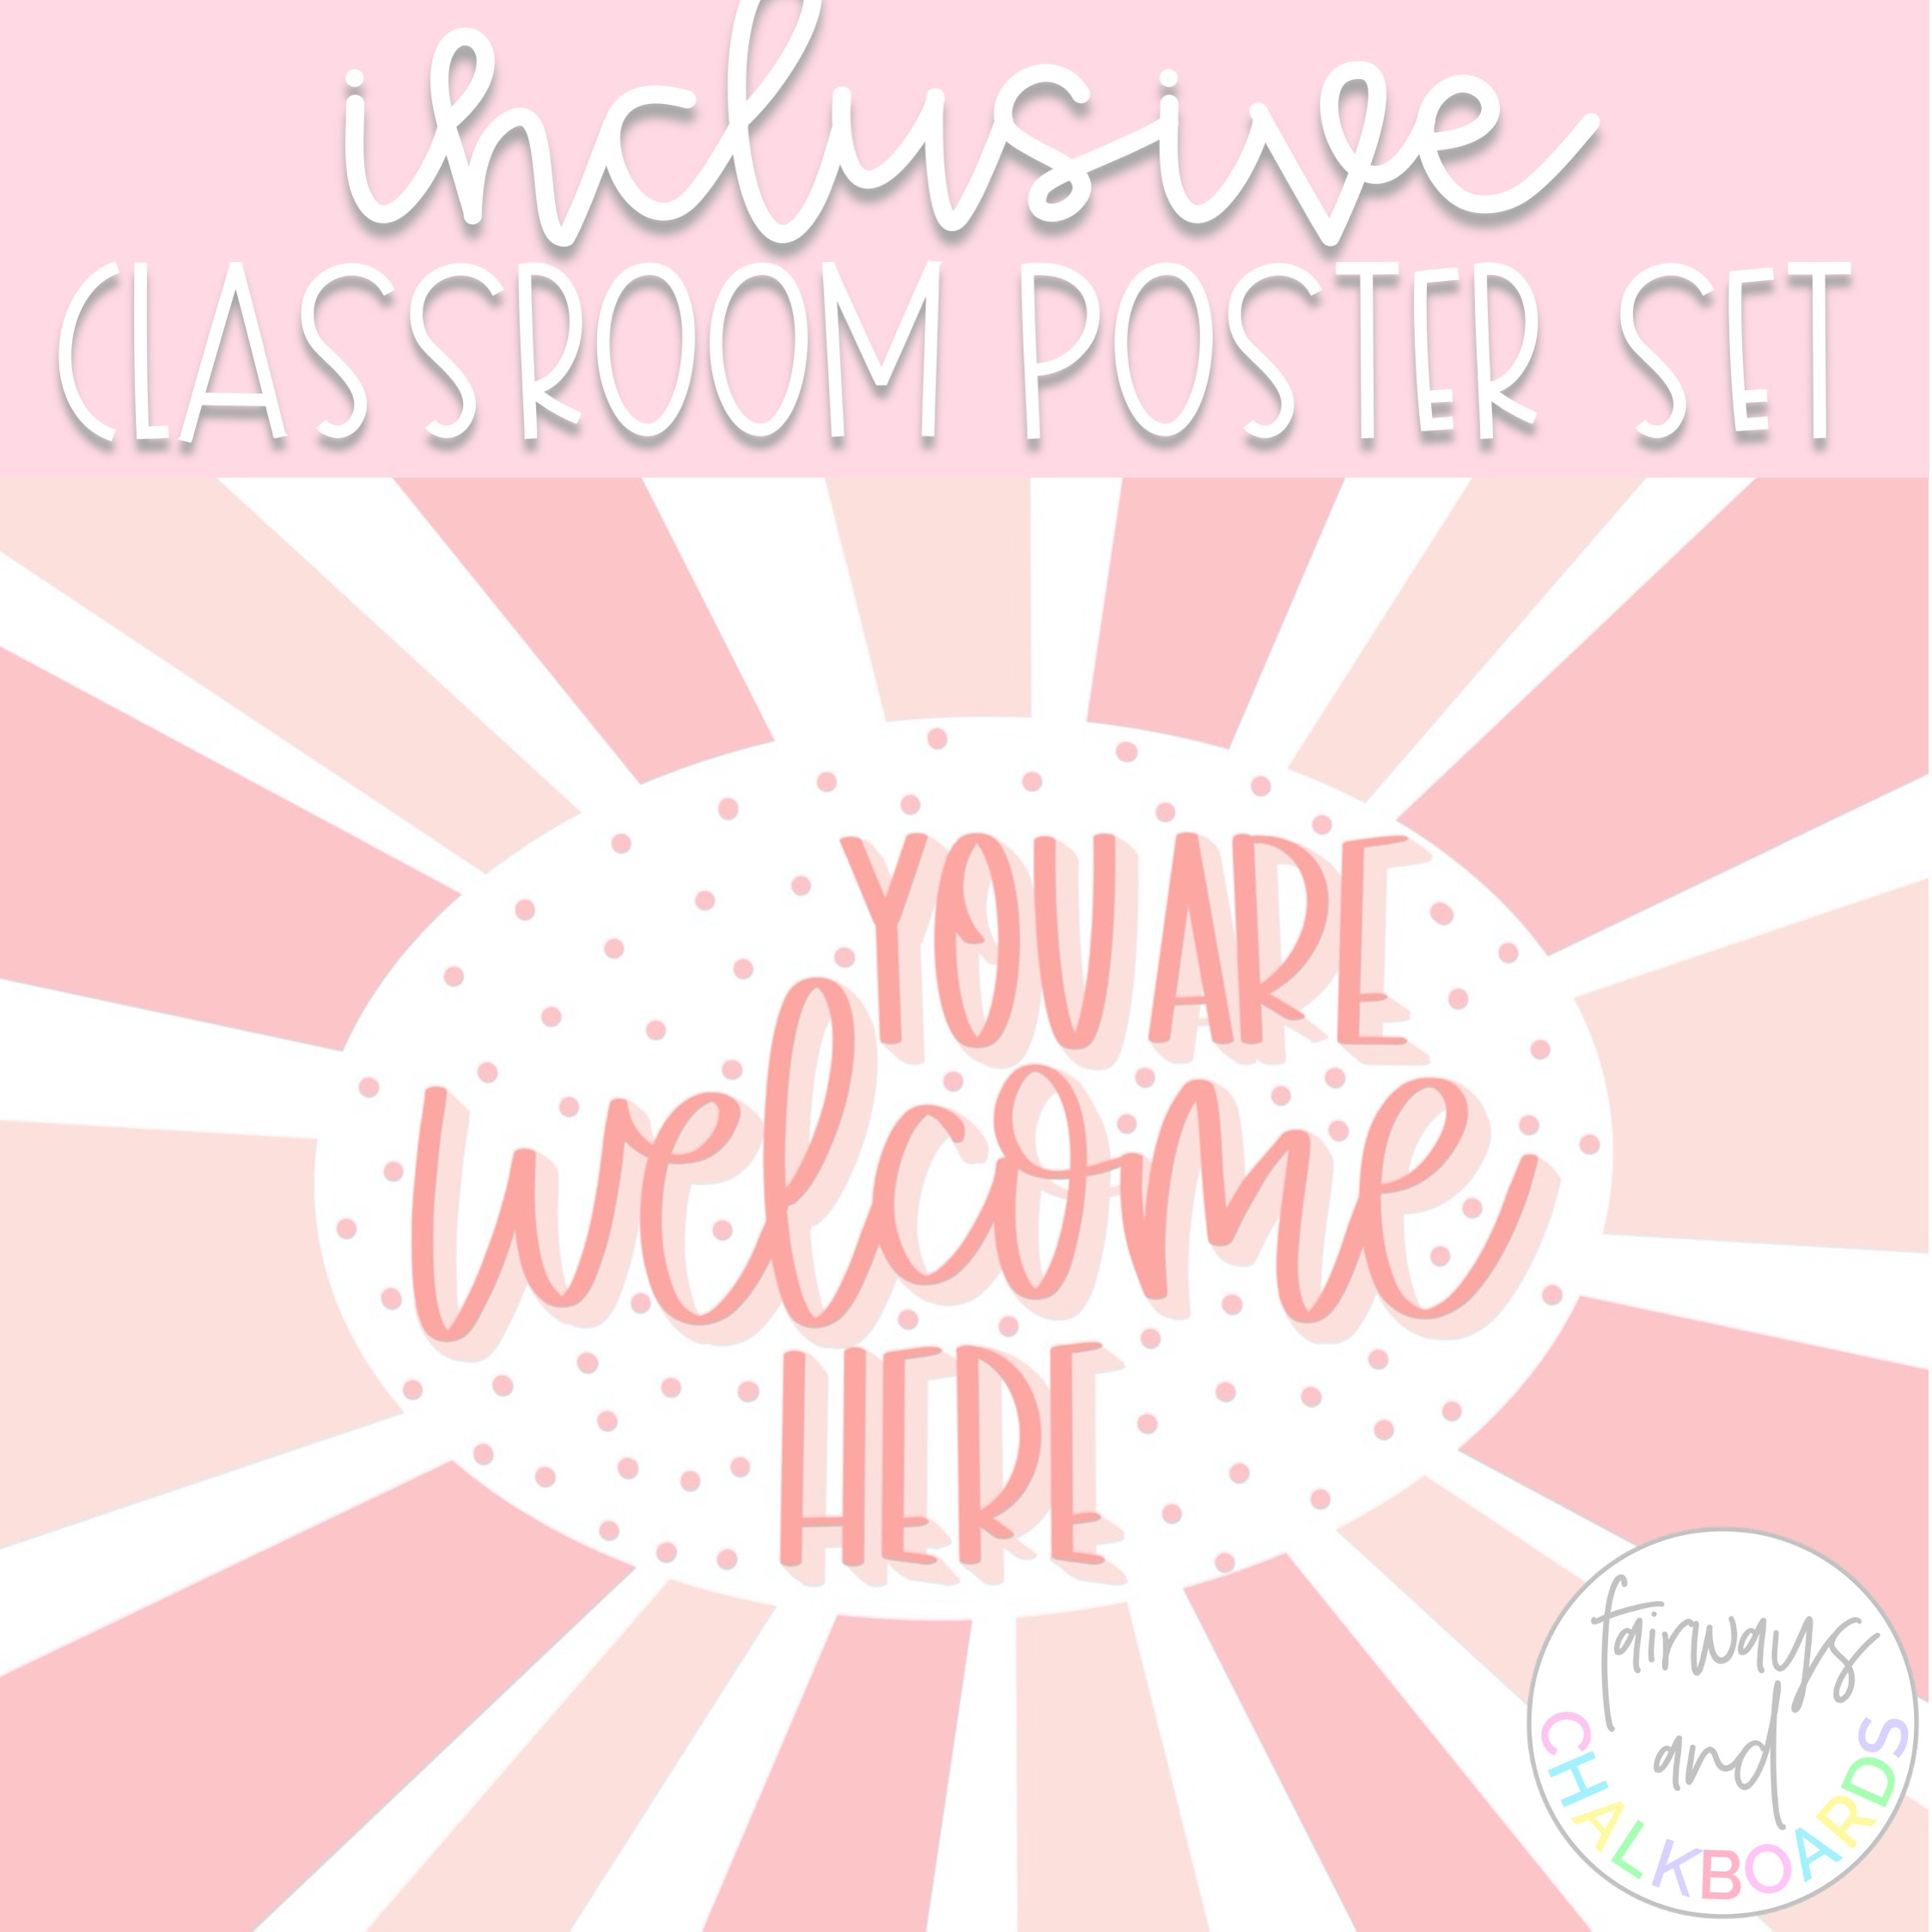 Inclusive Classroom Poster Set   PINK Aesthetic